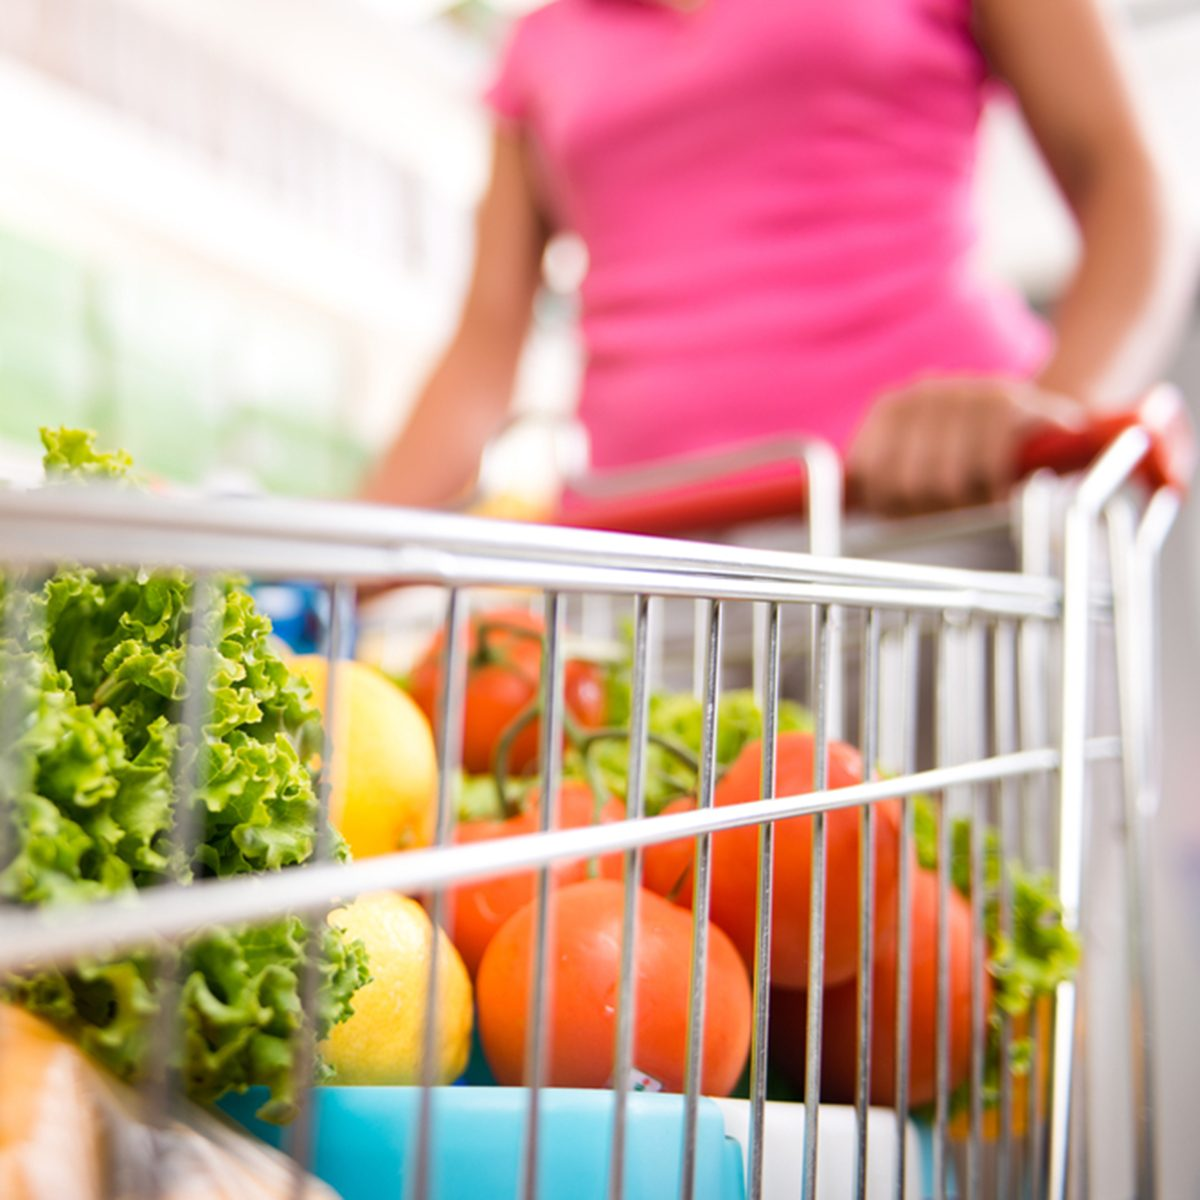 Woman at supermarket pushing a shopping cart filled with fresh fruit and vegetables.